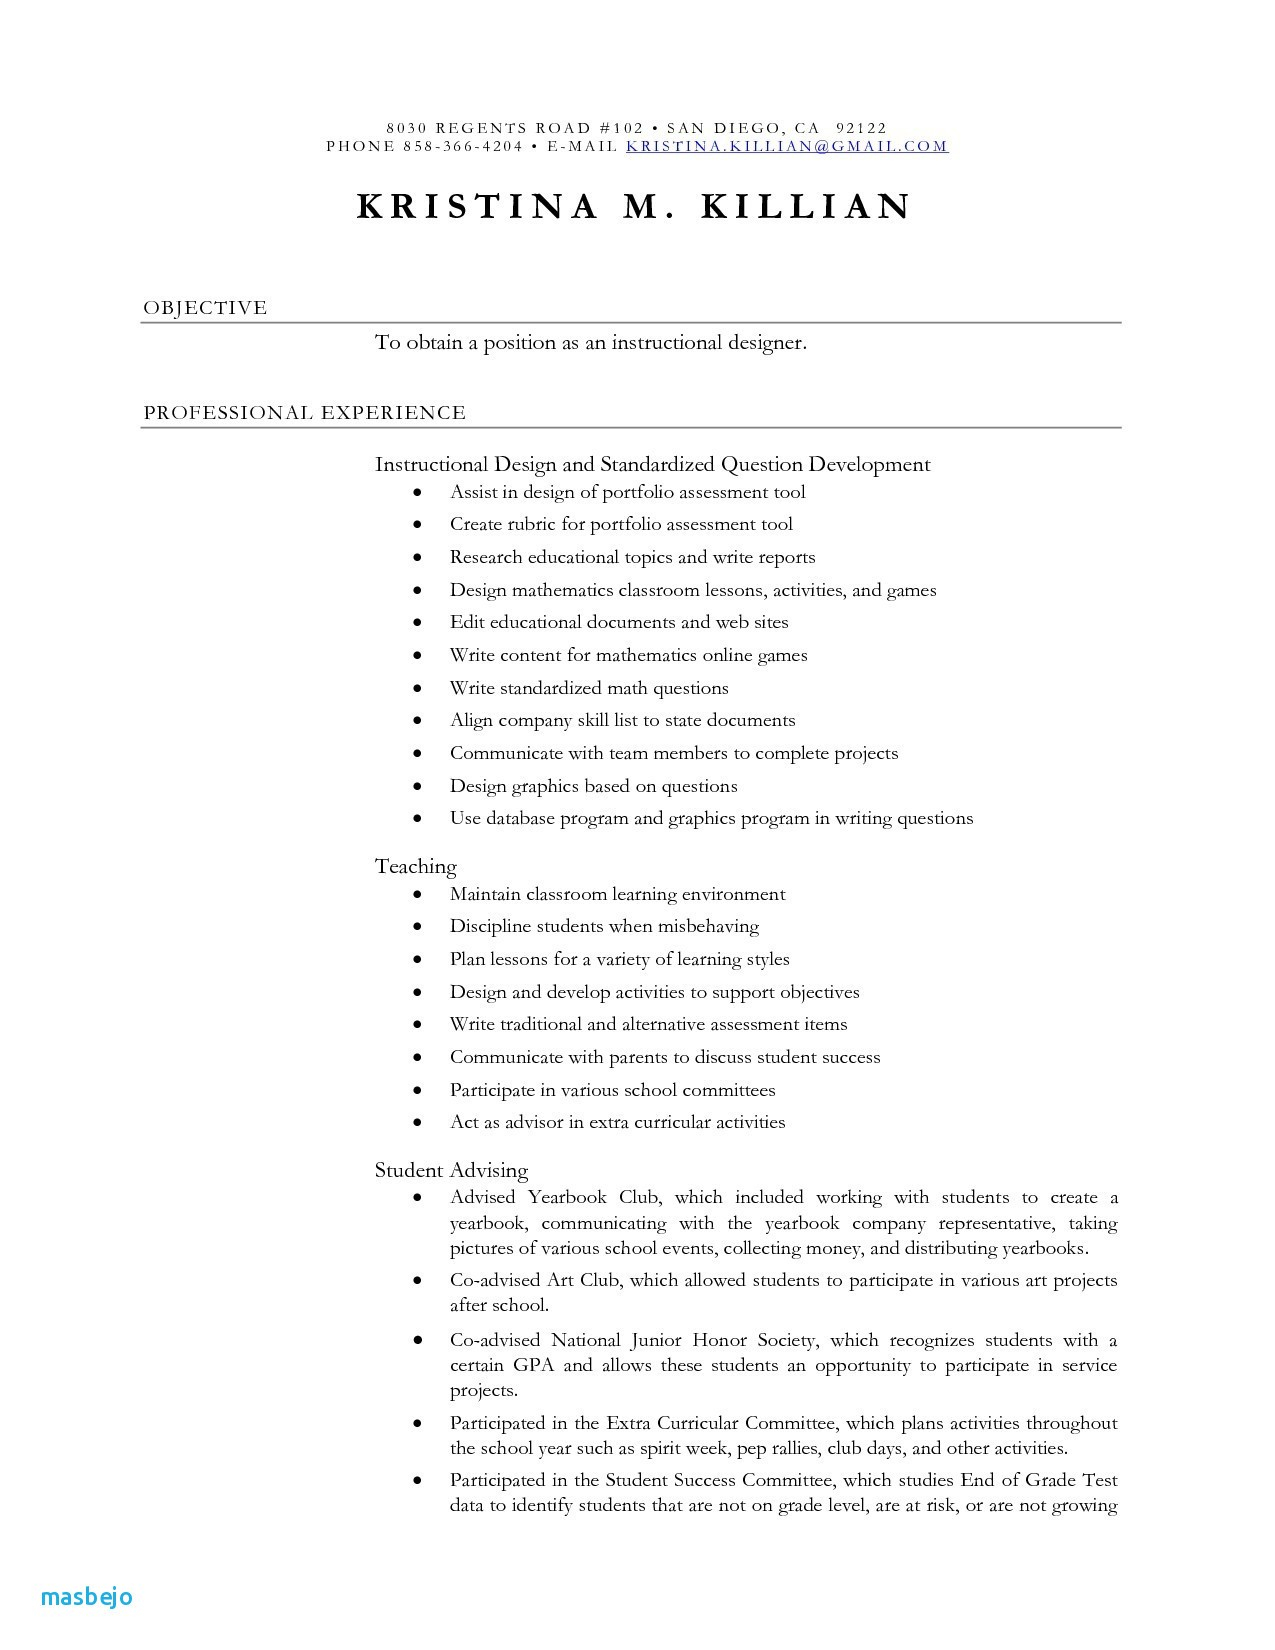 Teacher Resume Skills - Success Essays Examples Save Daycare Resume Examples Teacher Resume